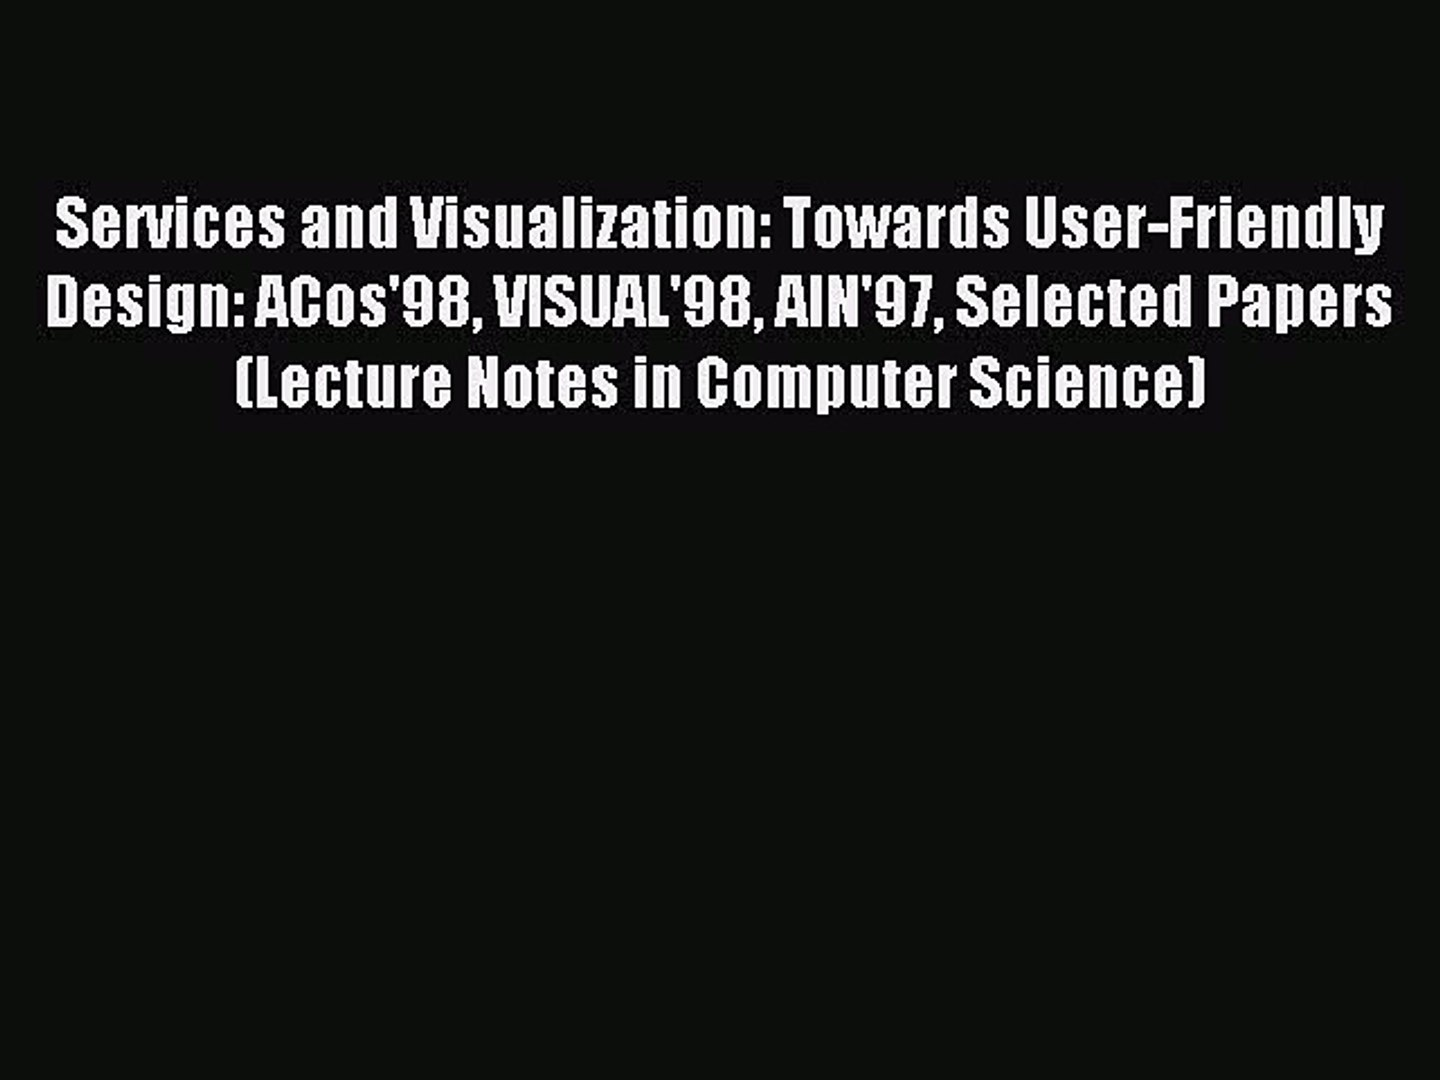 Download Services and Visualization: Towards User-Friendly Design: ACos'98 VISUAL'98 AIN&#